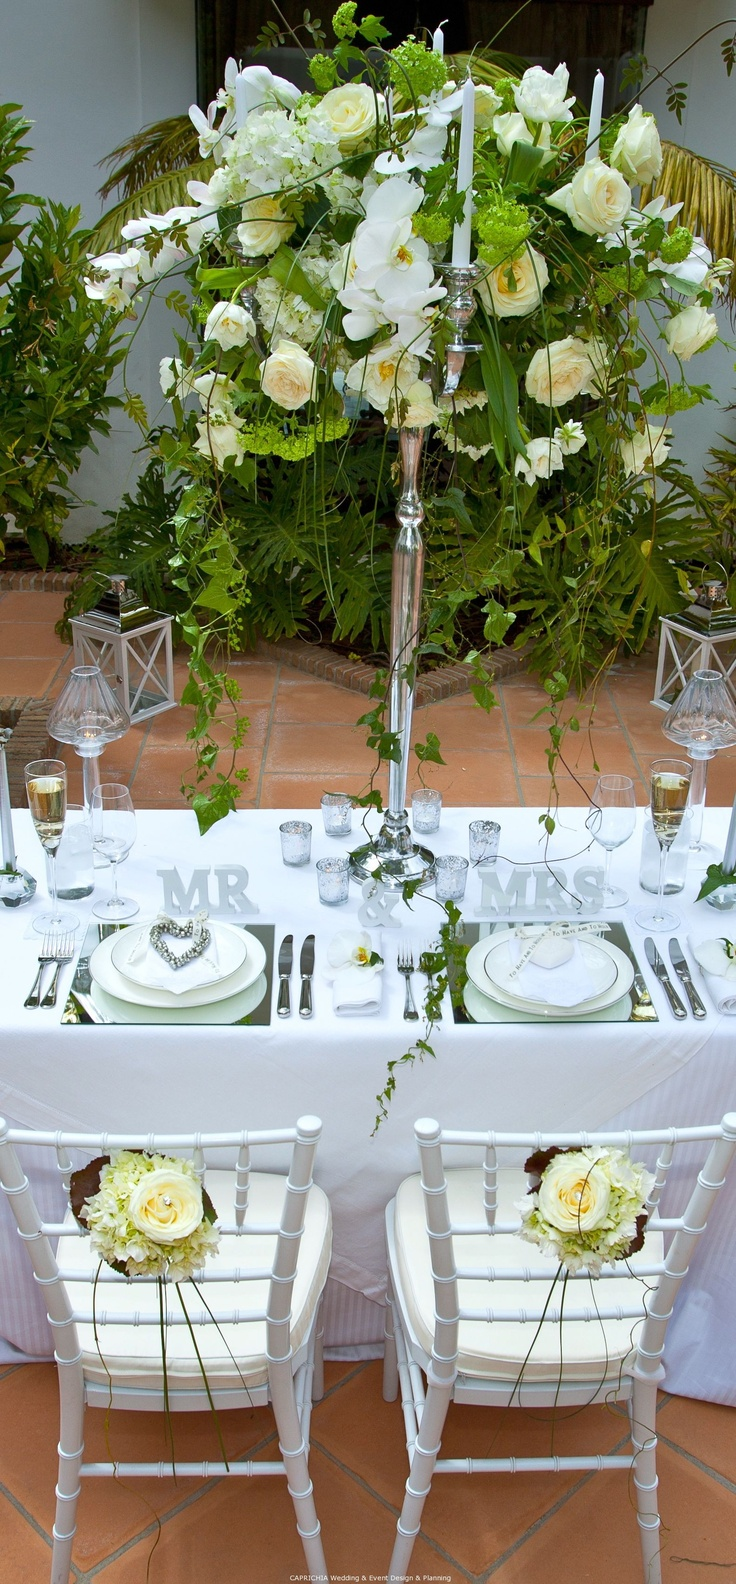 Signature Mr & Mrs Wedding table by caprichia.com Weddings & Occasions (Marbella) Flowers by L&N Floral Design.